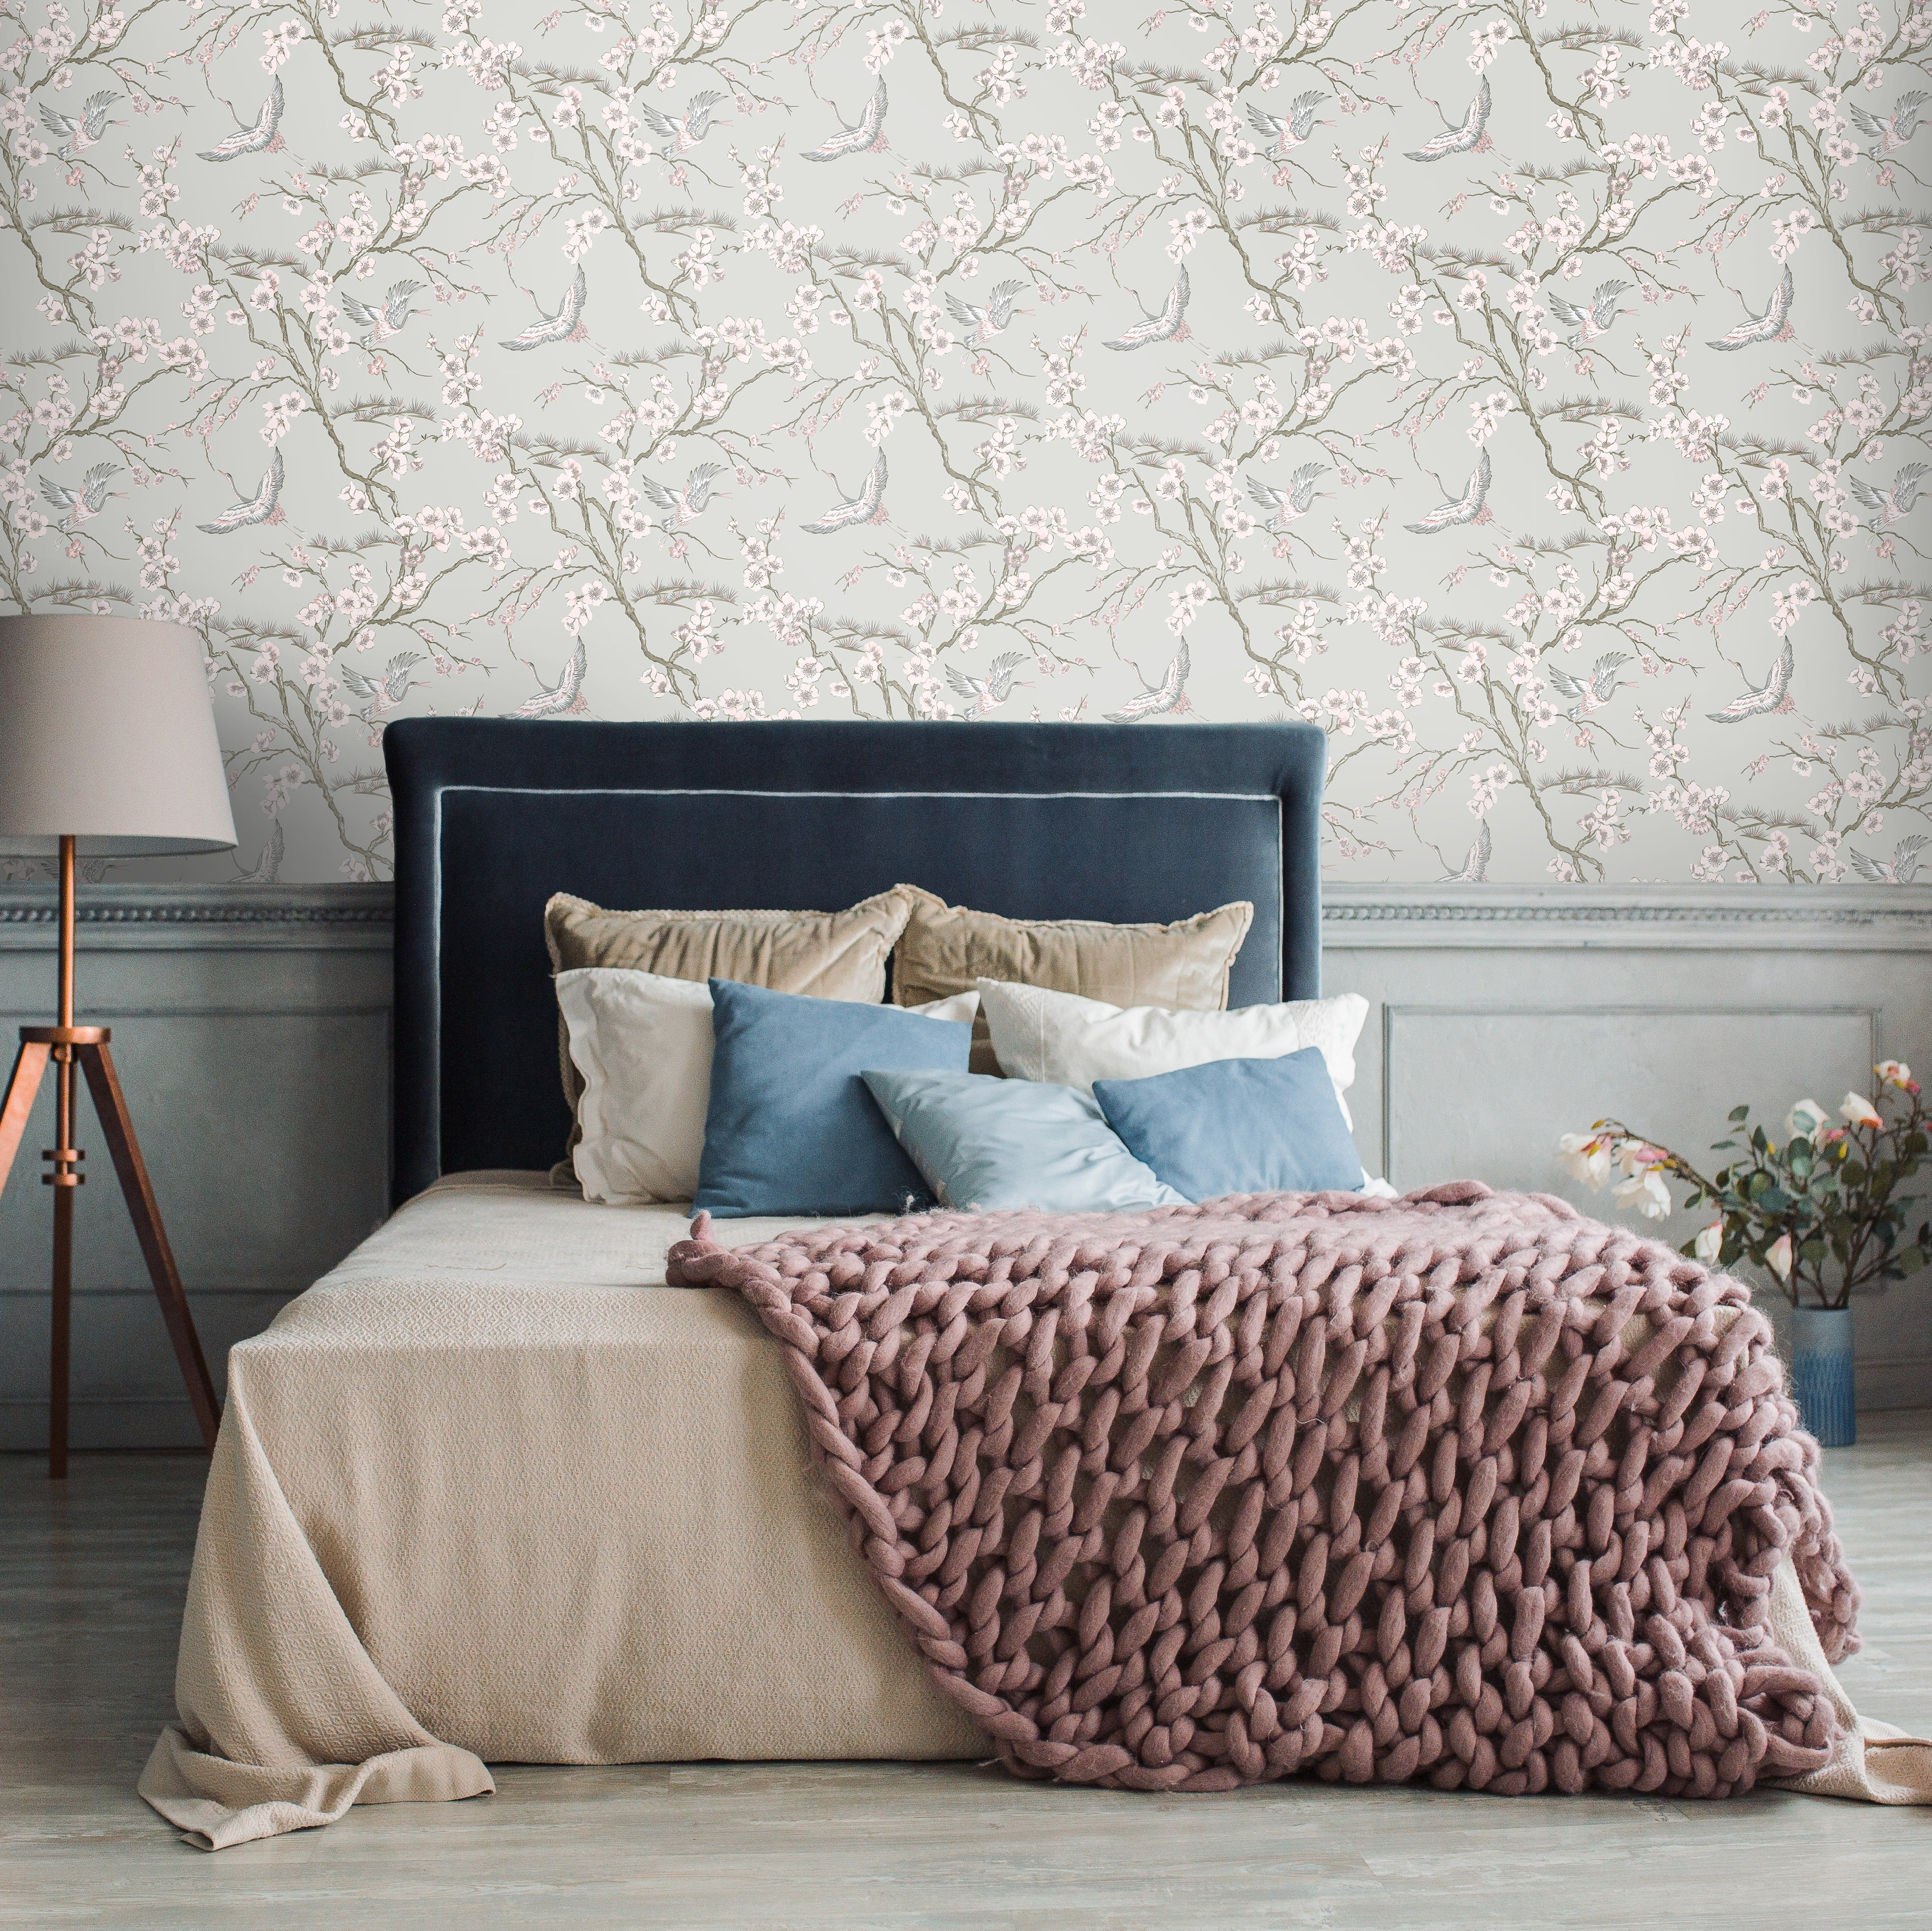 Crane and Floral Bird Wallpaper | Blush Pink, Silver & White